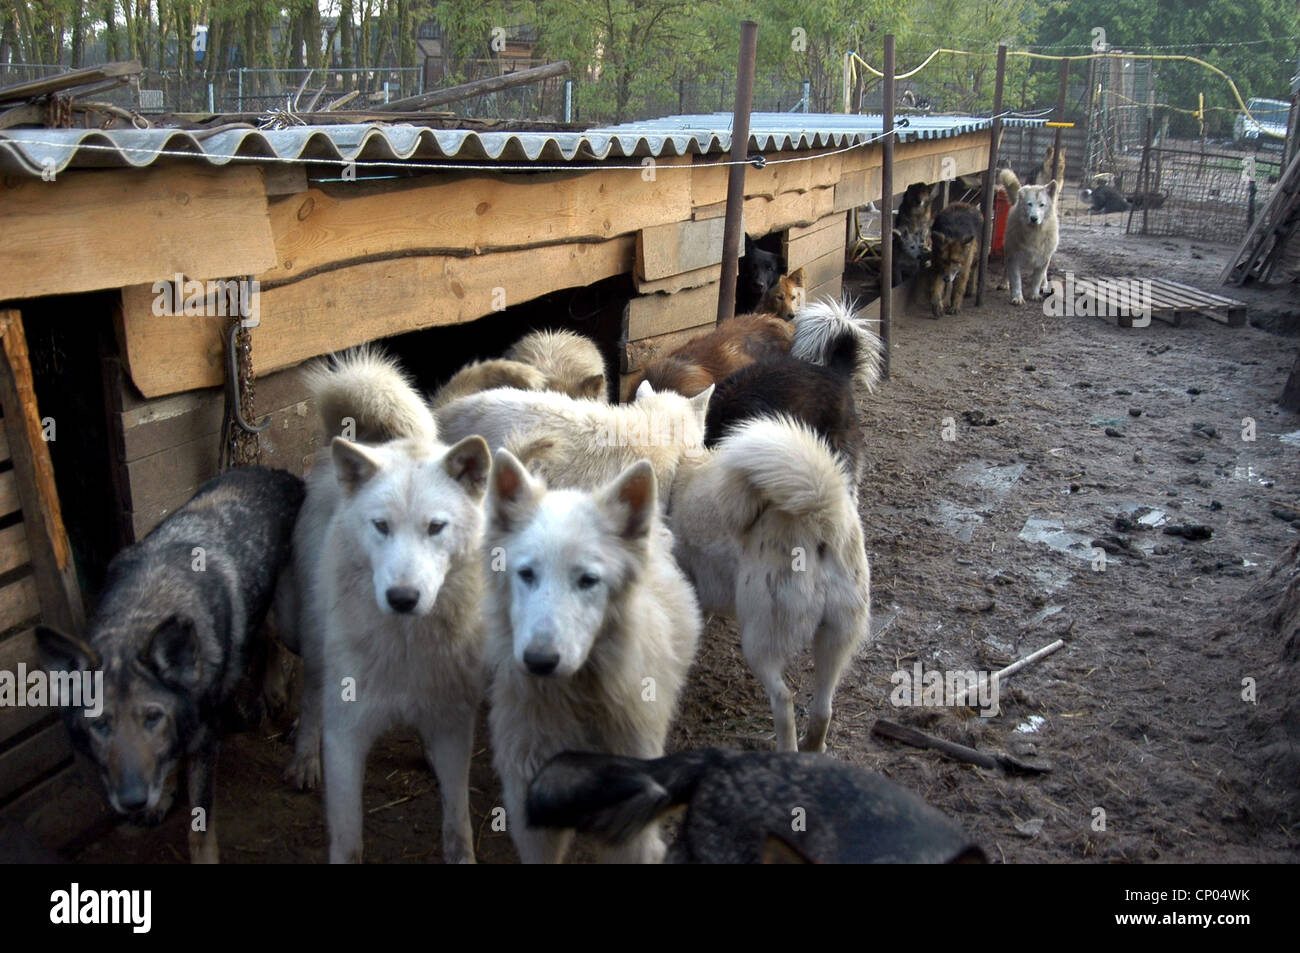 domestic dog (Canis lupus f. familiaris), scruffy dogs in a muddy kennel, animal hoarding, Germany, - Stock Image